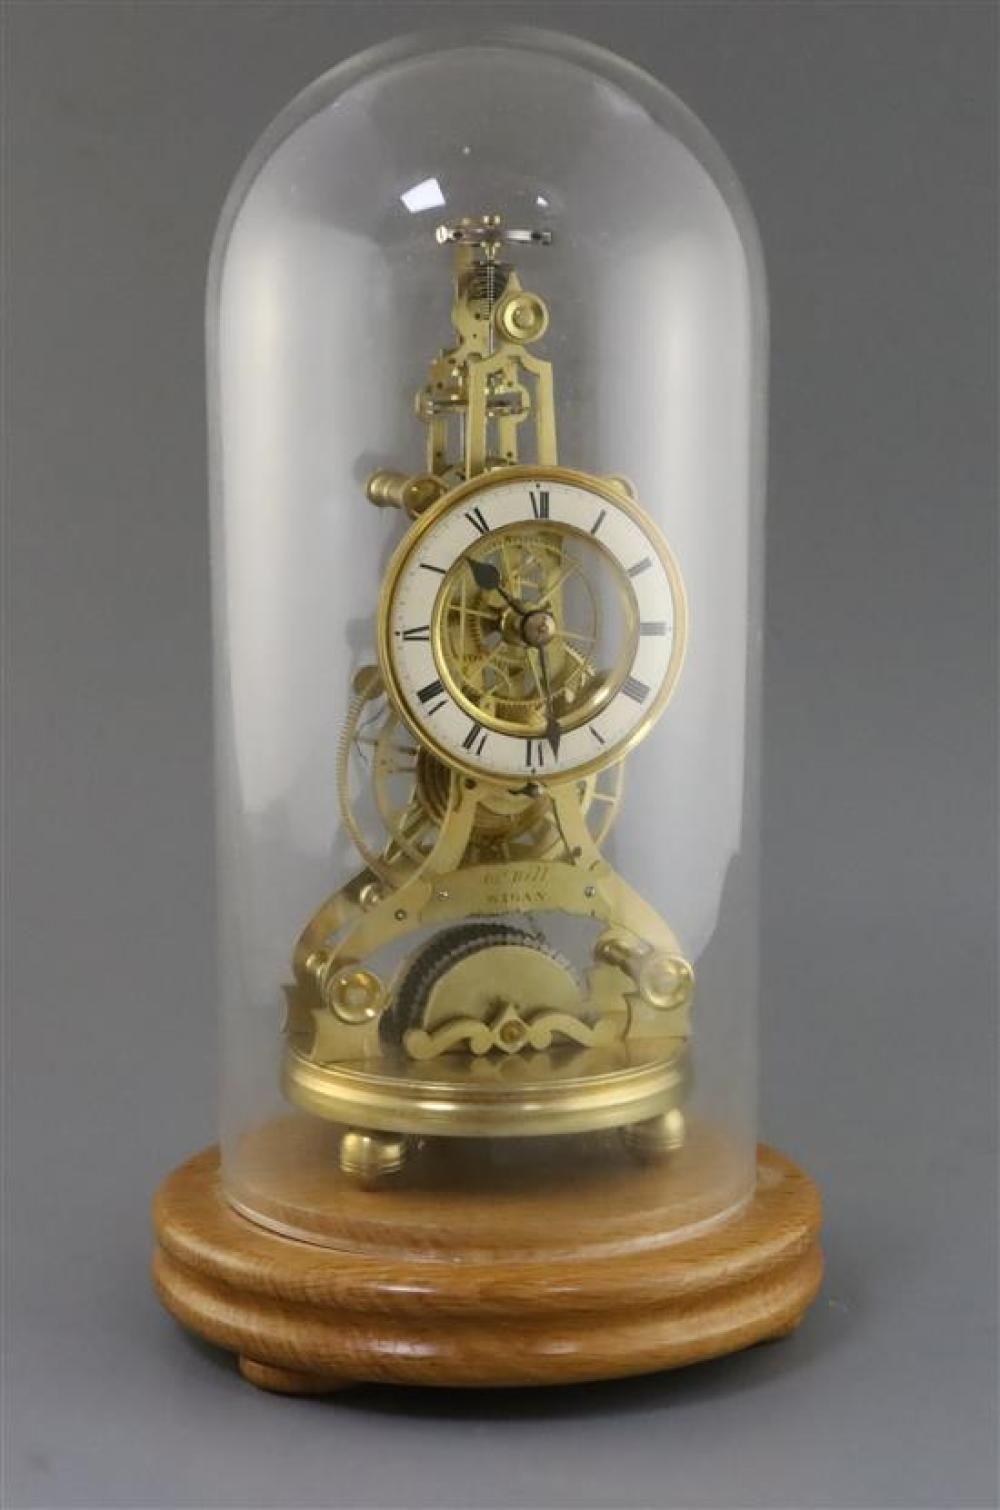 John Bell Of Wigan A Rare Balance Wheel Lever Escapement Brass Skeleton Timepiece In The Manner Of James Condliff Liverpool 11in He Wigan Time Piece Balance Wheel